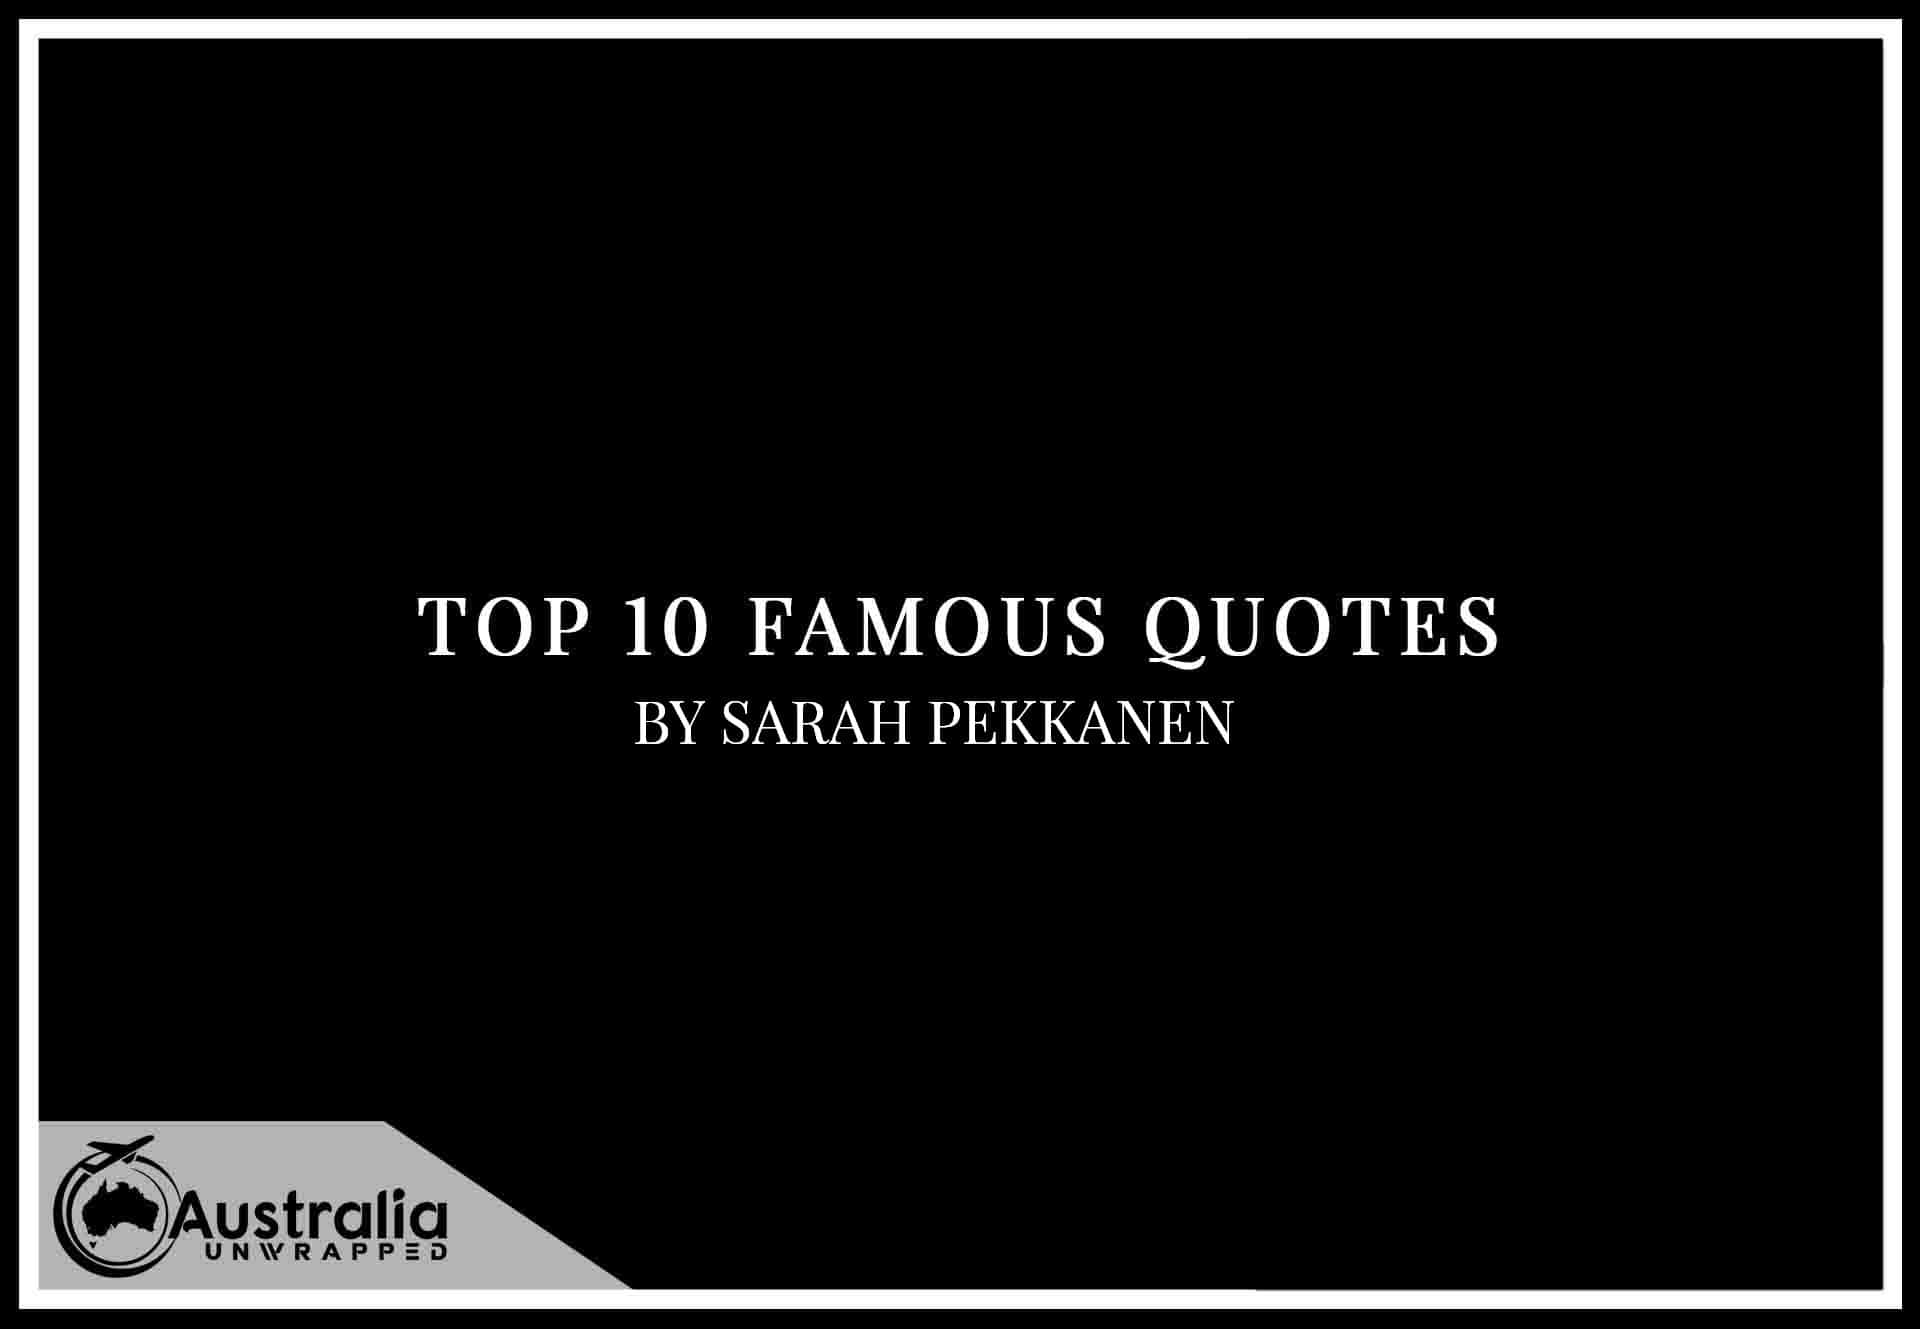 Top 10 Famous Quotes by Author Sarah Pekkanen